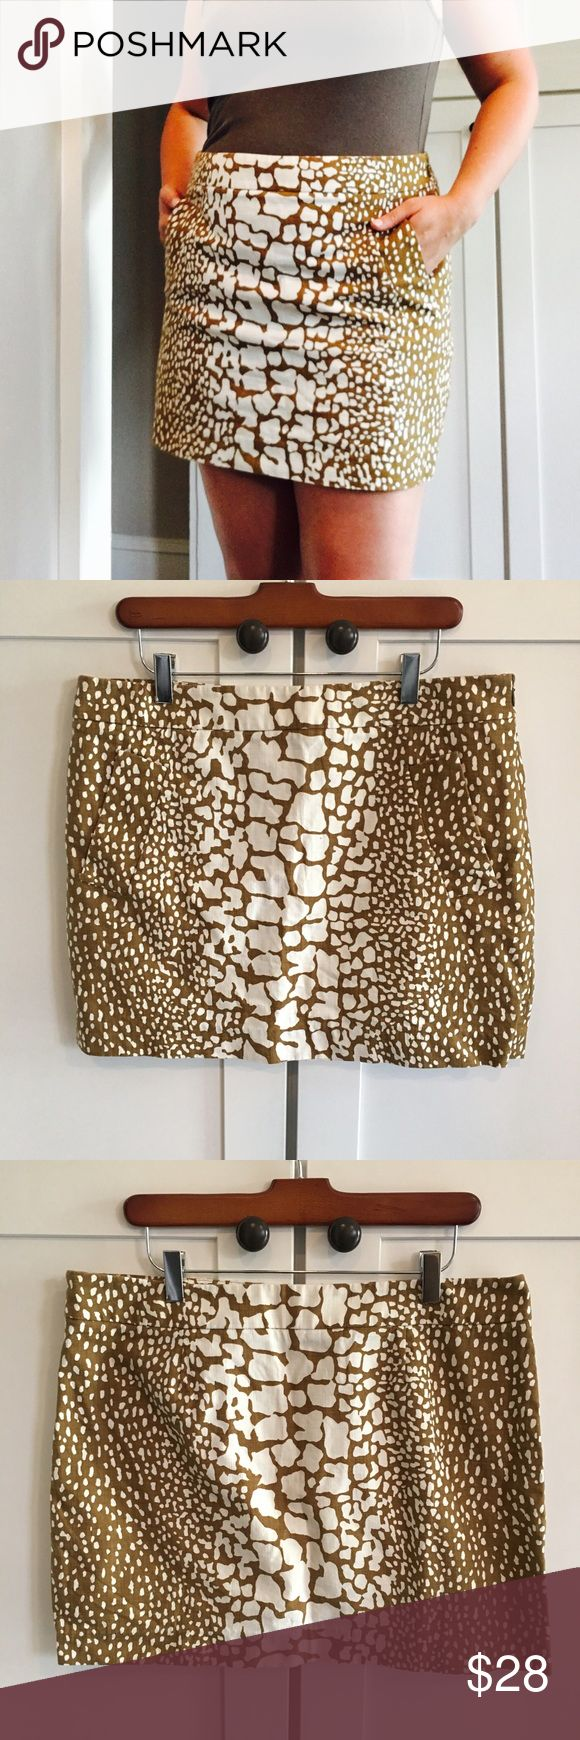 J. Crew Tan & White Python Print Mini Skirt J. Crew Tan & White Python Print Mini Skirt with Pockets!!  J. Crew calls it a python print but I think it looks more like a giraffe 🤔 Such a fun skirt either way!  For reference, the pic is of me and I'm usually a size 10, so could easily work for size 10 or 12.  Make me an offer 😉 J. Crew Skirts Mini